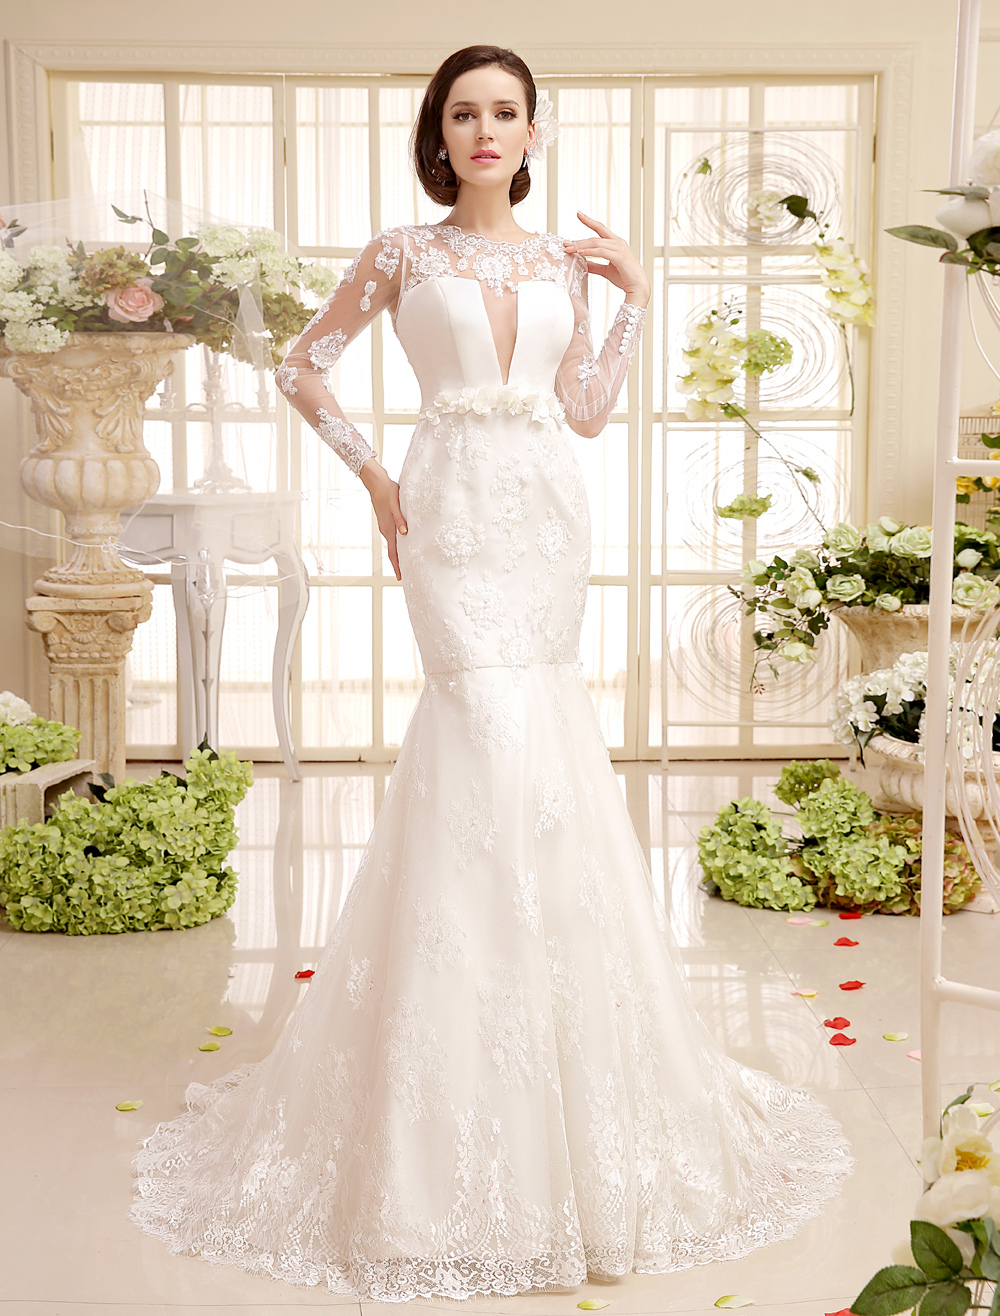 Ivory Applique Flower Court Train Lace Bridal Wedding Gown Milanoo